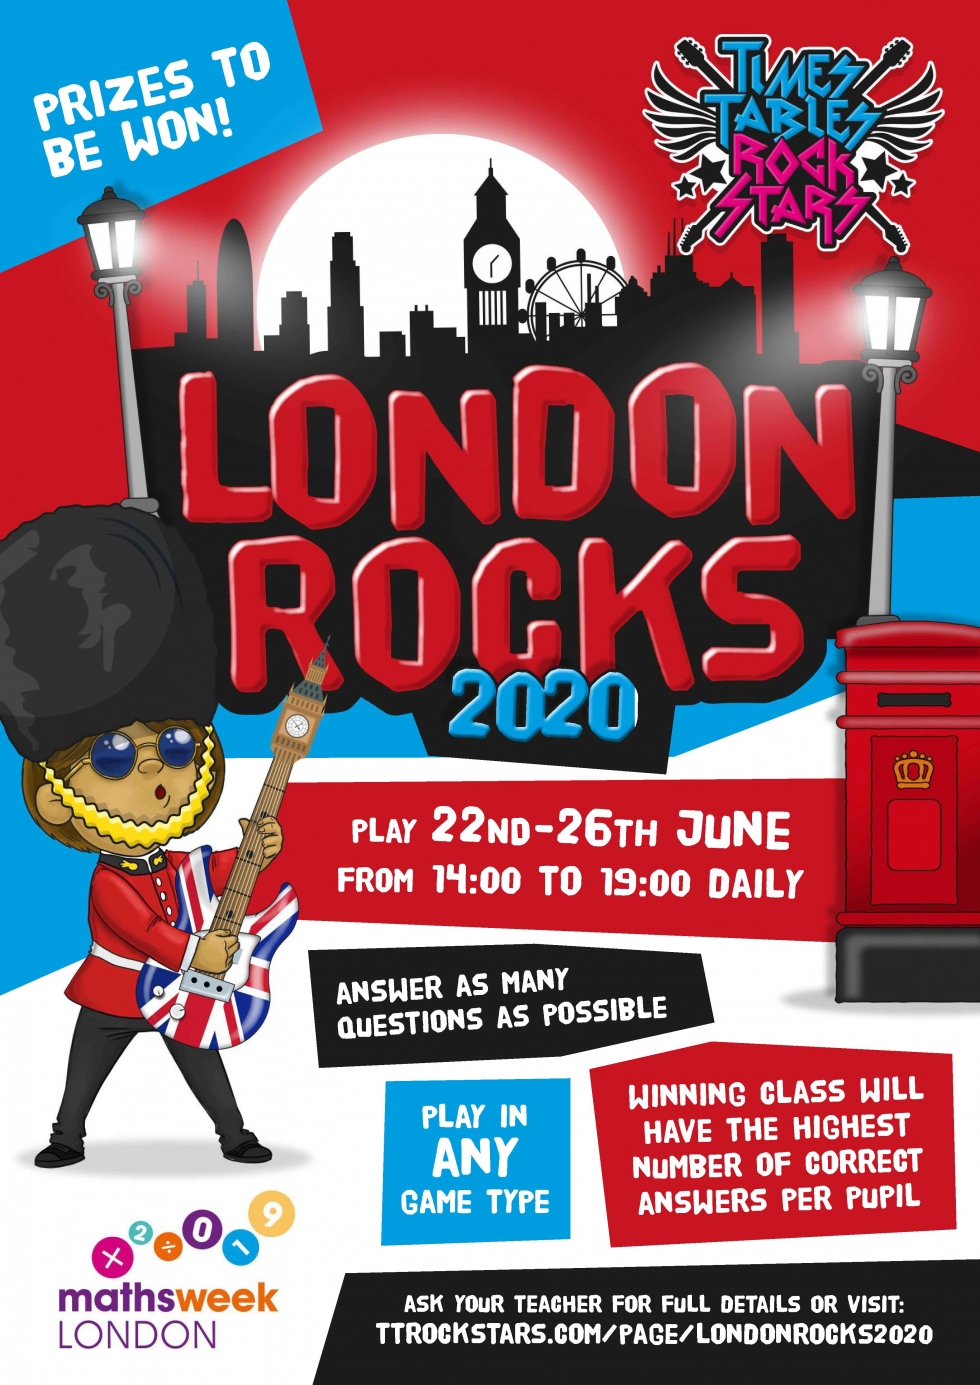 Download your London Rocks Poster now.